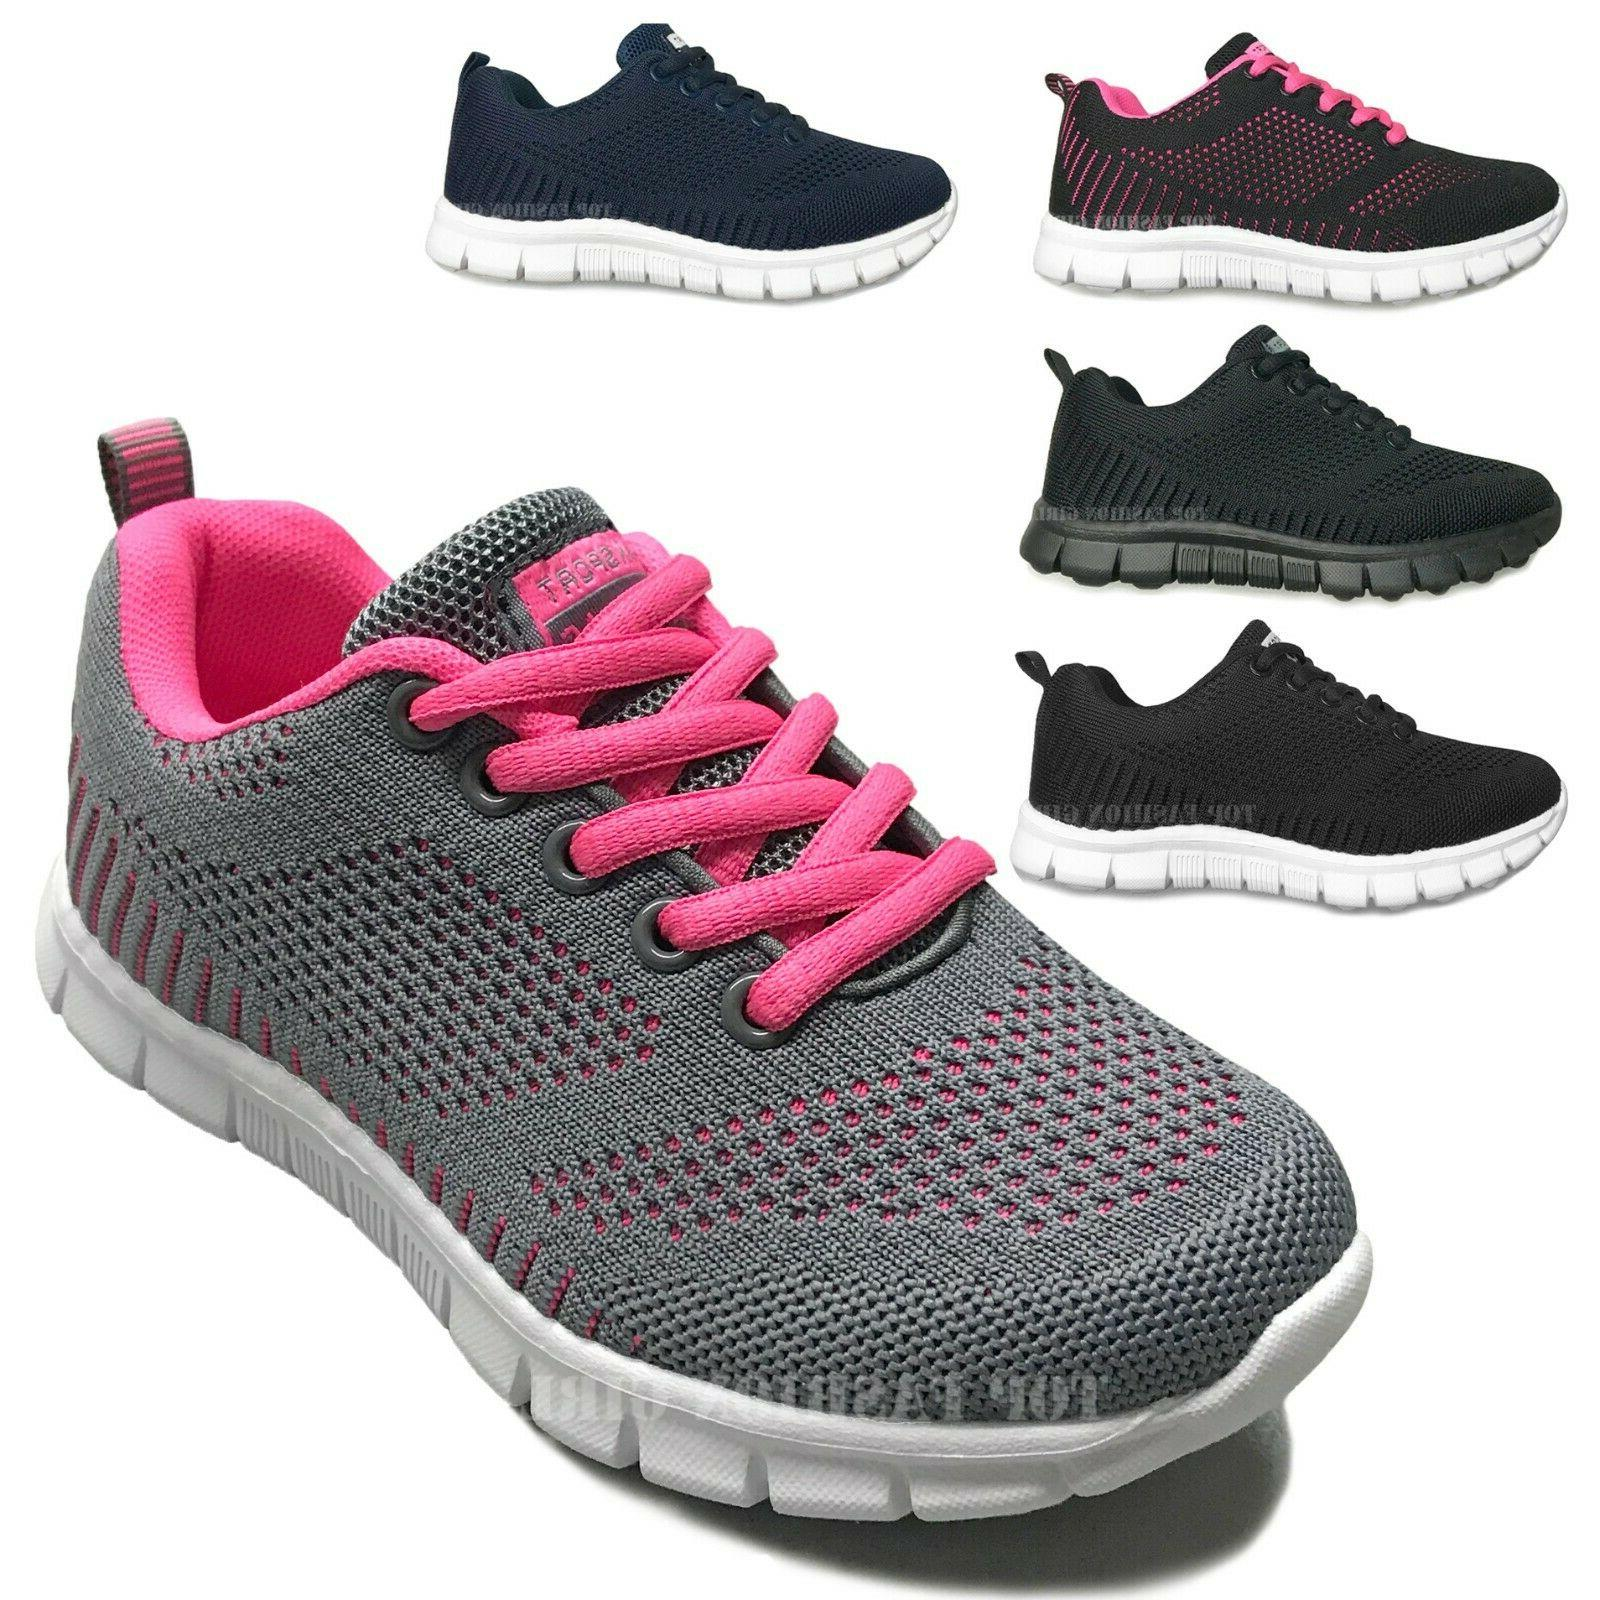 NEW Kids Girls Mesh Lace Up Sporty Shoes Size